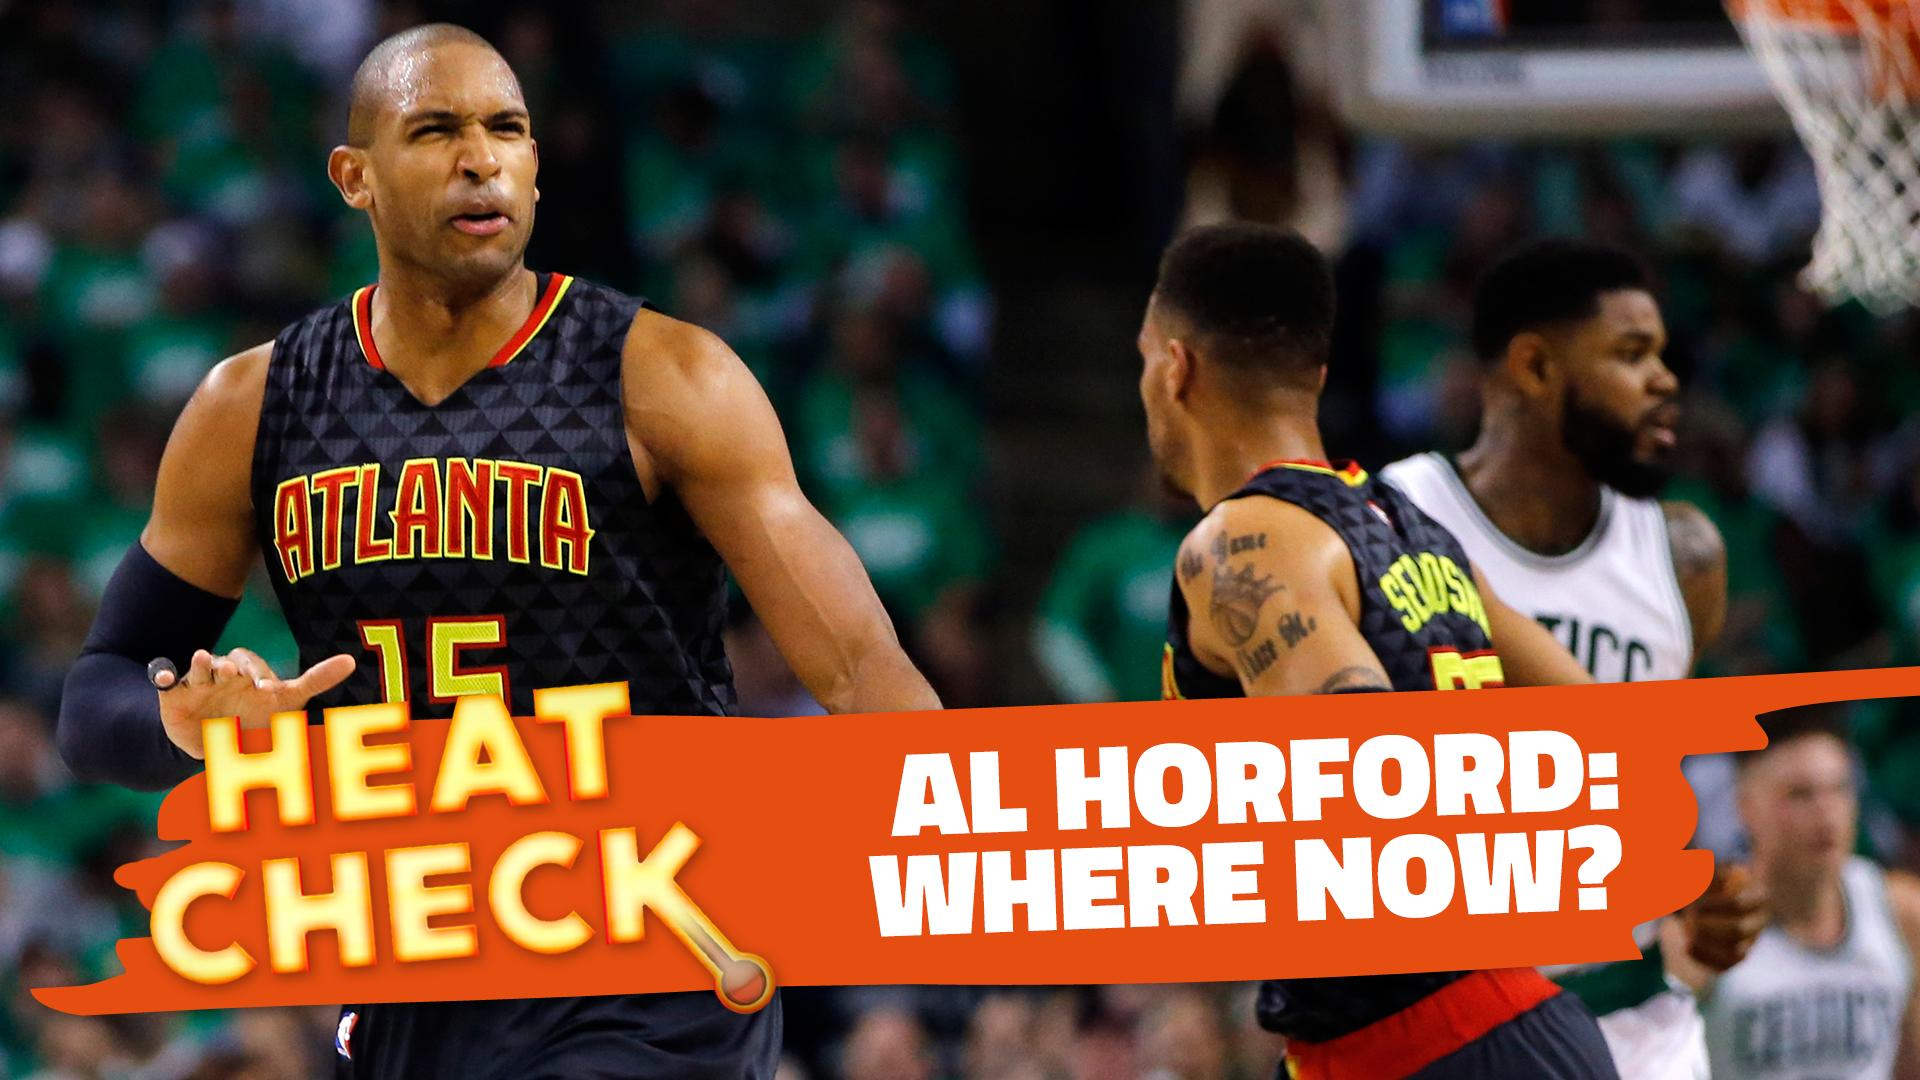 Hibbert and no 6 seed hawks al horford are two of the best centers - Hibbert And No 6 Seed Hawks Al Horford Are Two Of The Best Centers 12